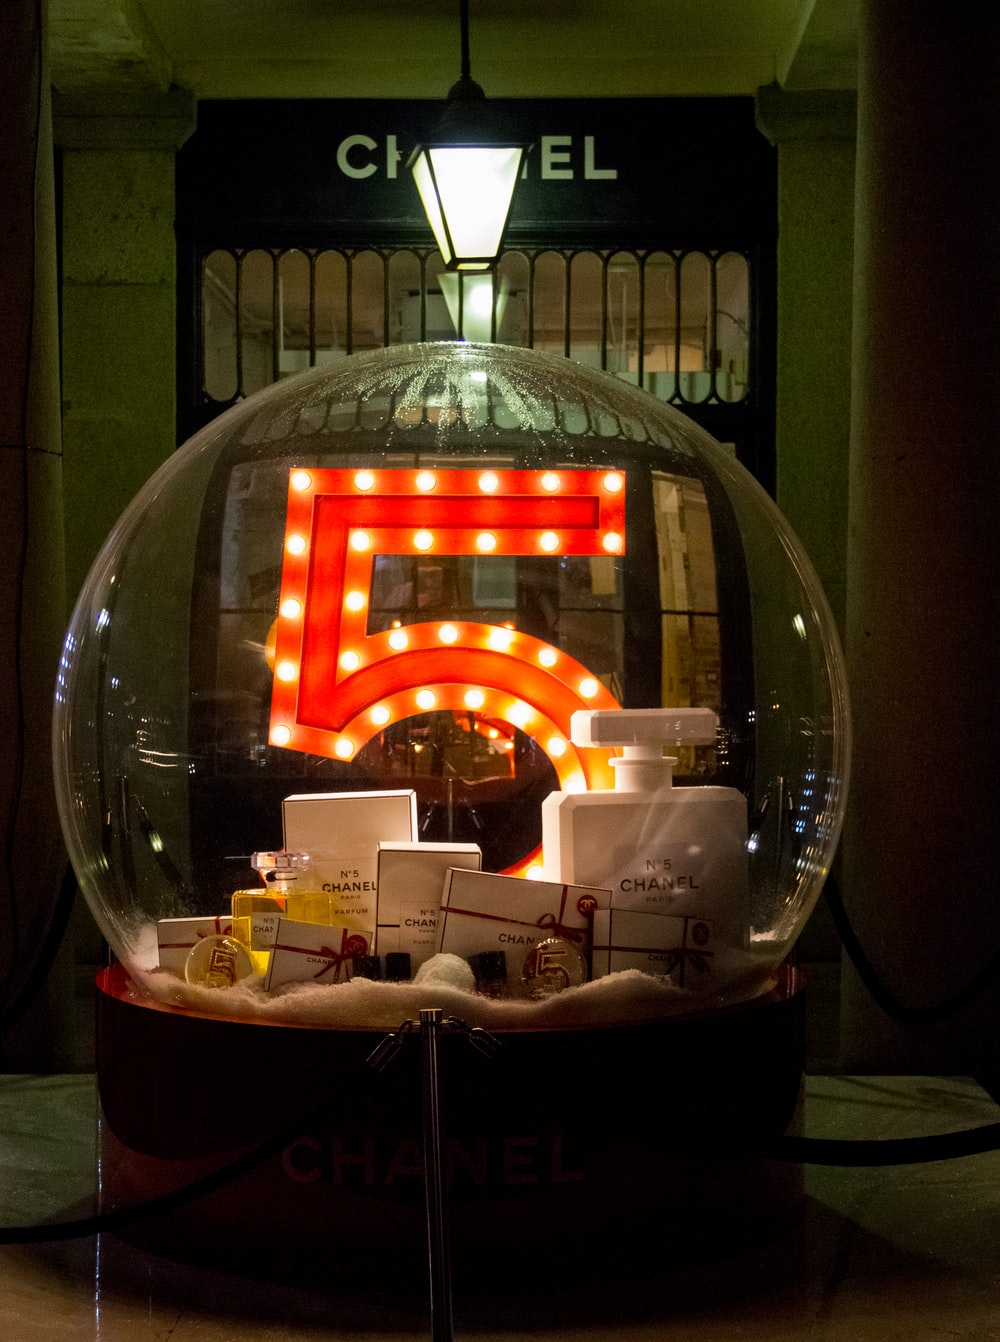 A large glass ball with the number 5, full of Chanel products in front of their storefront.